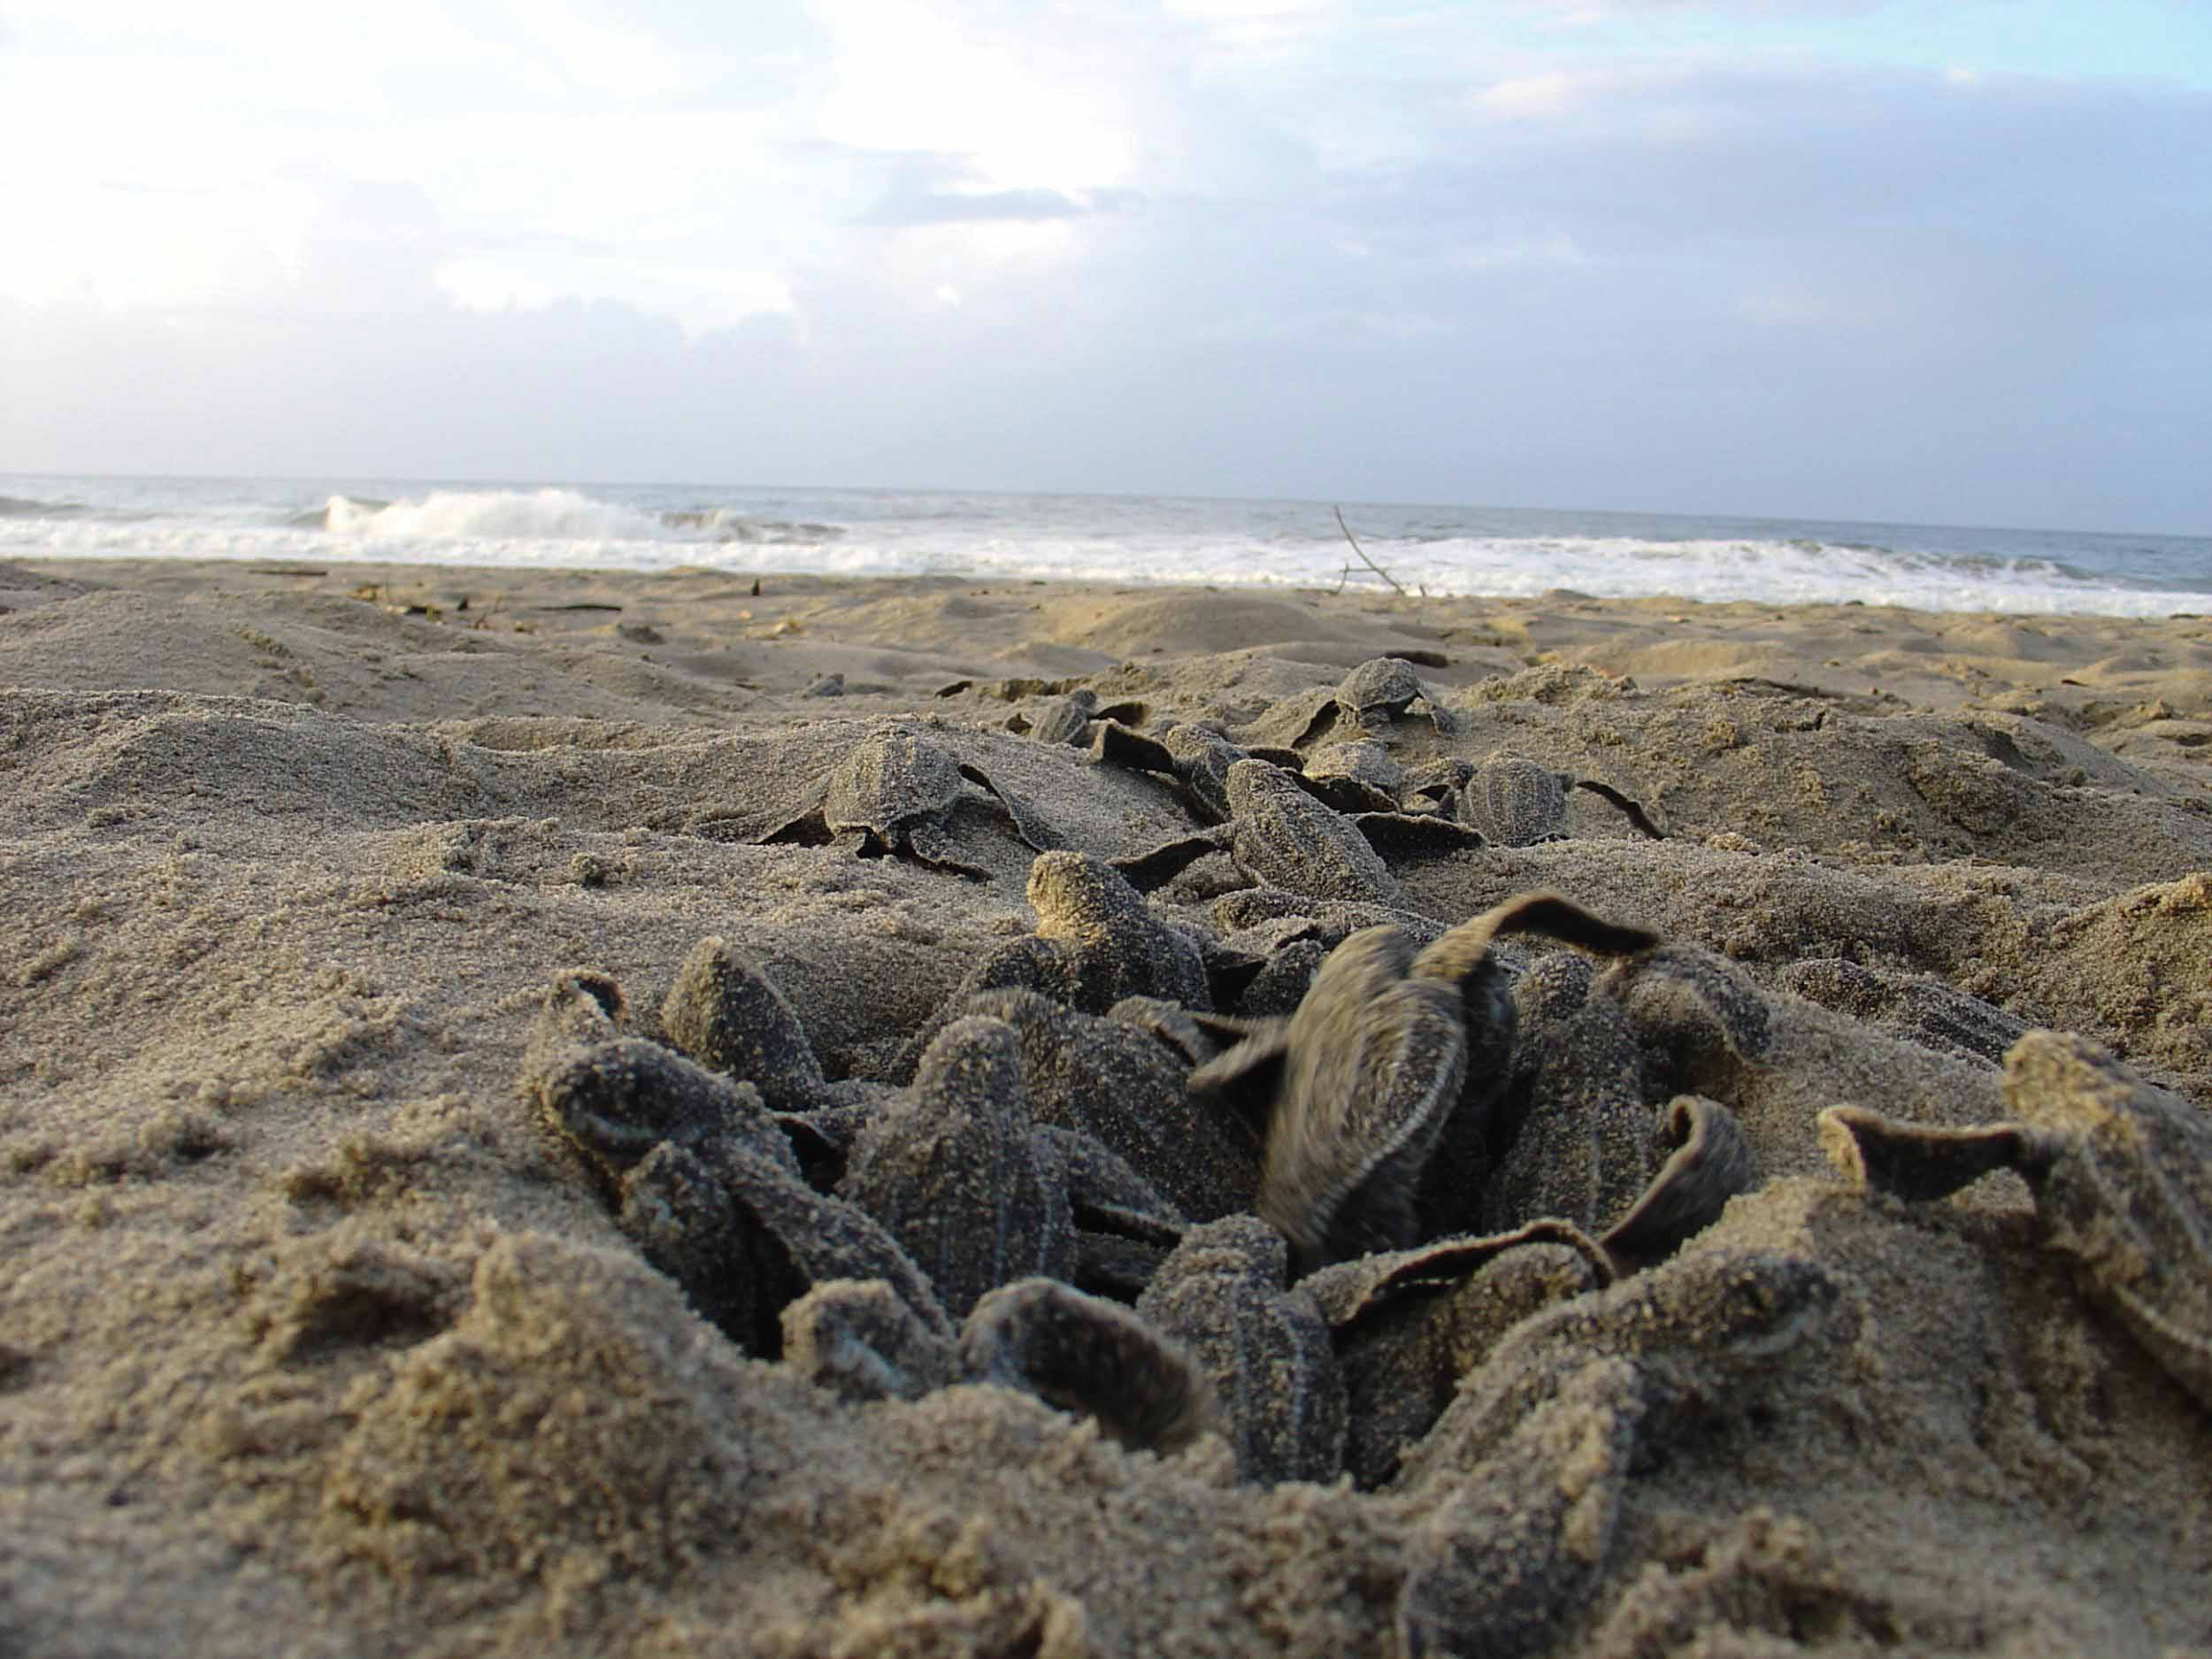 Leatherback hatchlings make their way from nest to sea. © SUZANNE LIVINGSTONE / UNIVERSITY OF GLASGOW